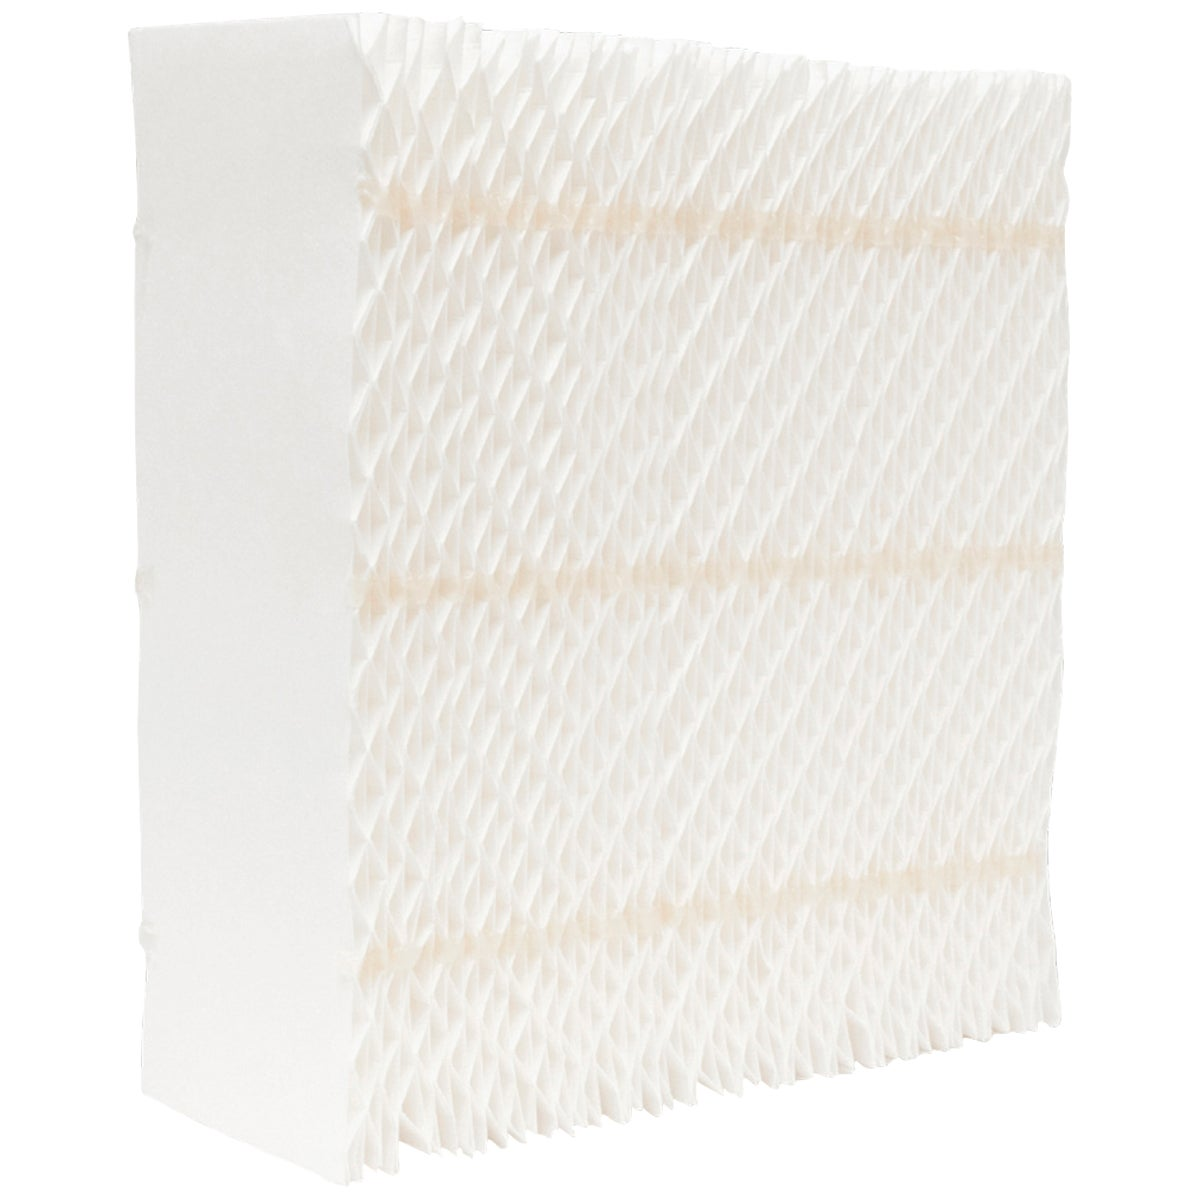 HUMIDIFIER WICK FILTER - 1043 by Essick Air Products